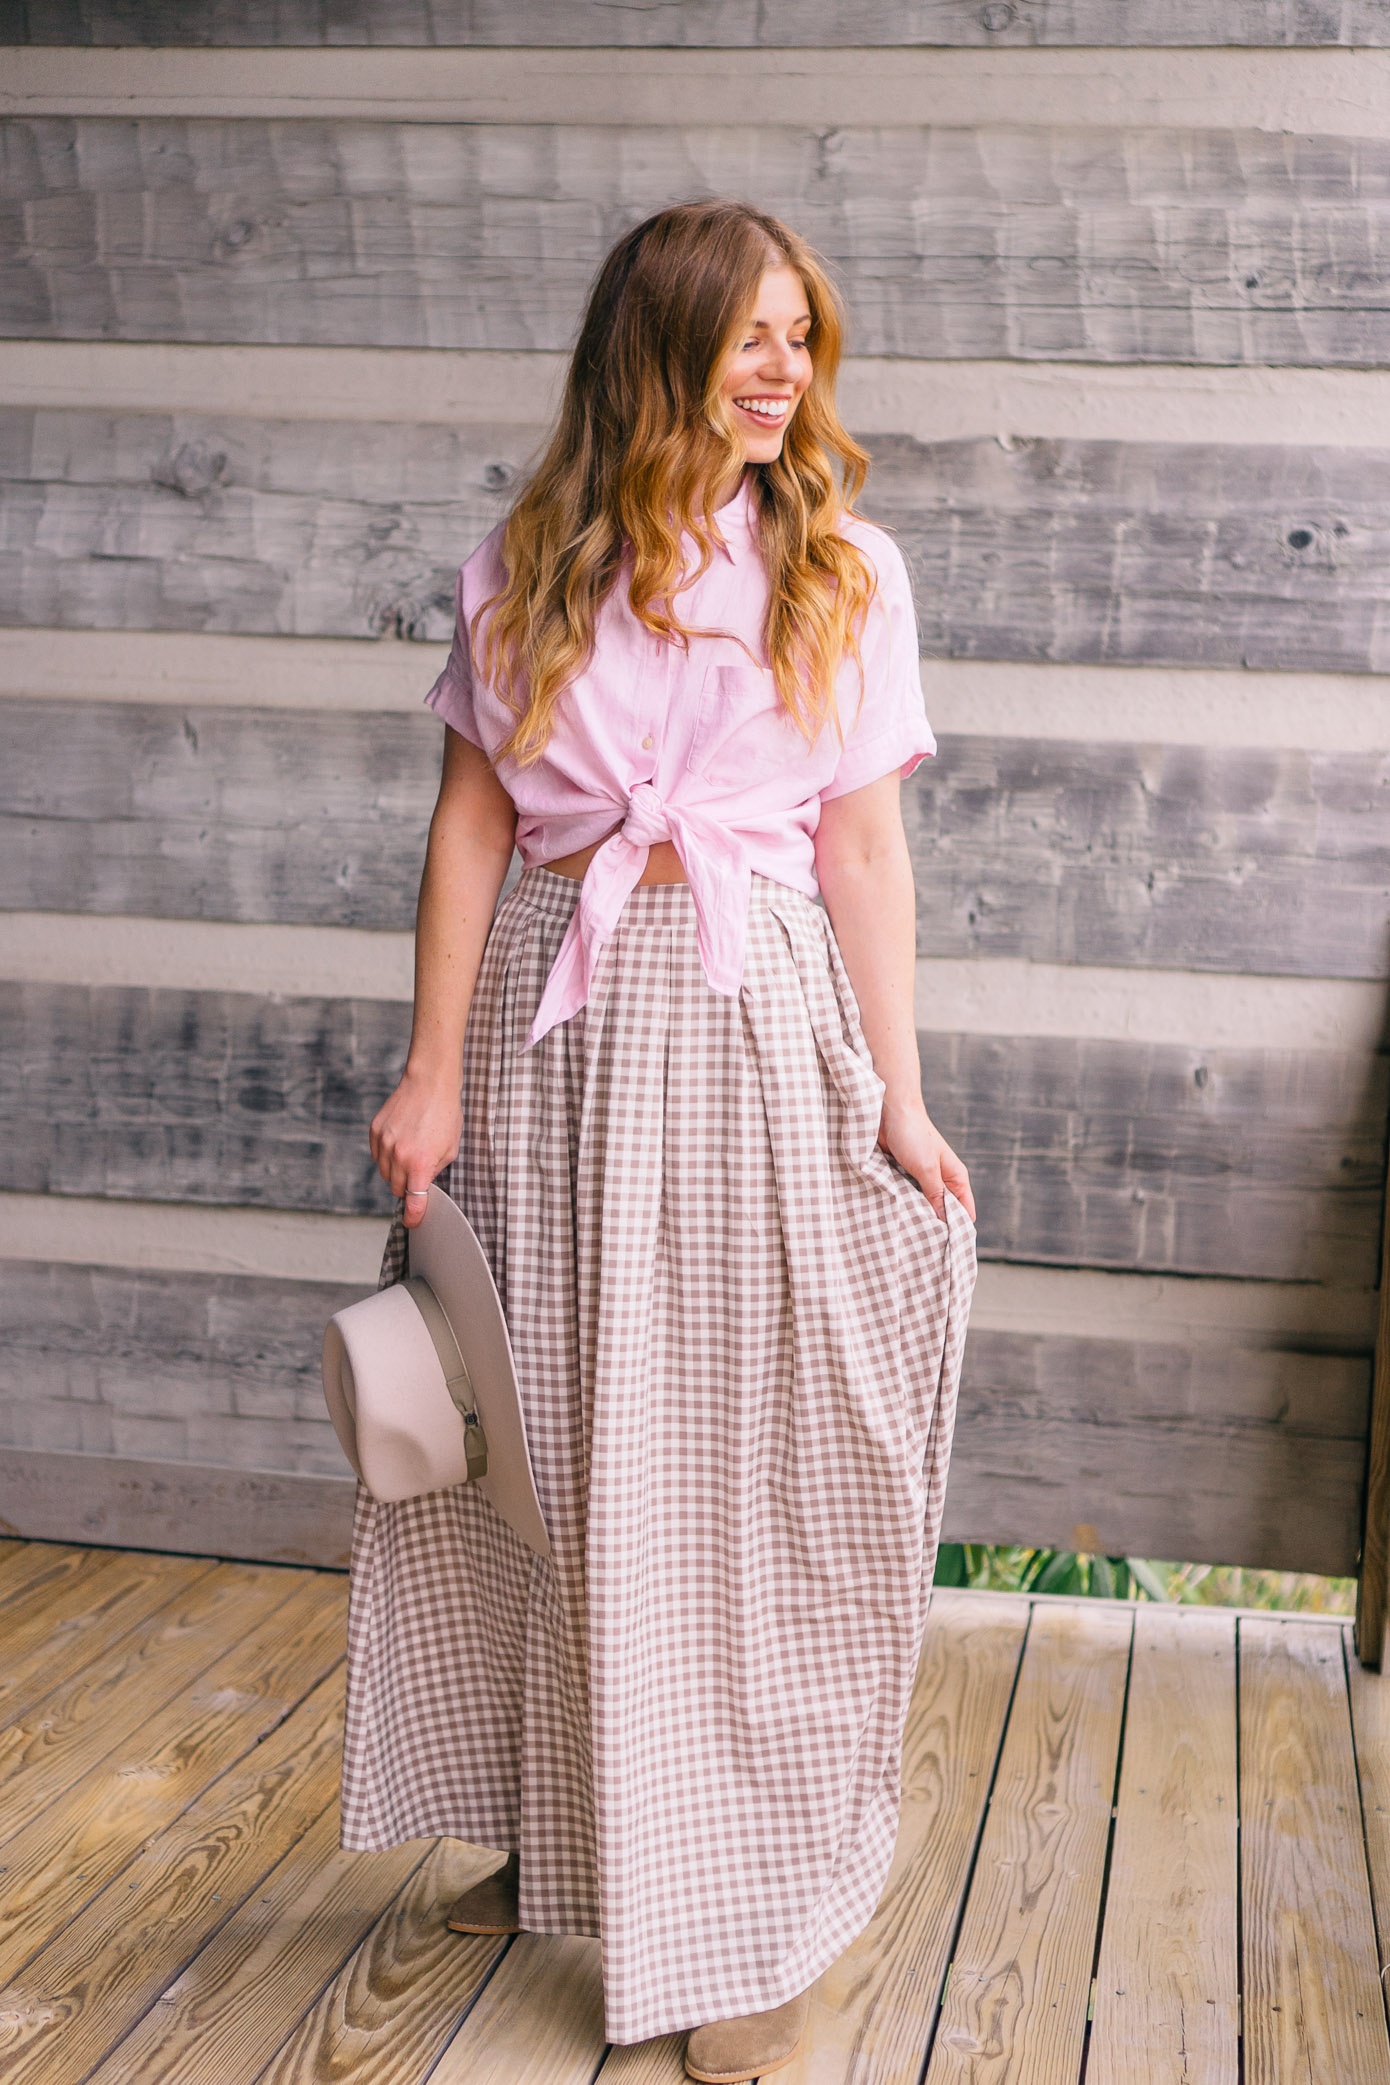 Three Skirts Styled Three Ways | Summer Capsule Wardrobe | Louella Reese Life & Style Blog